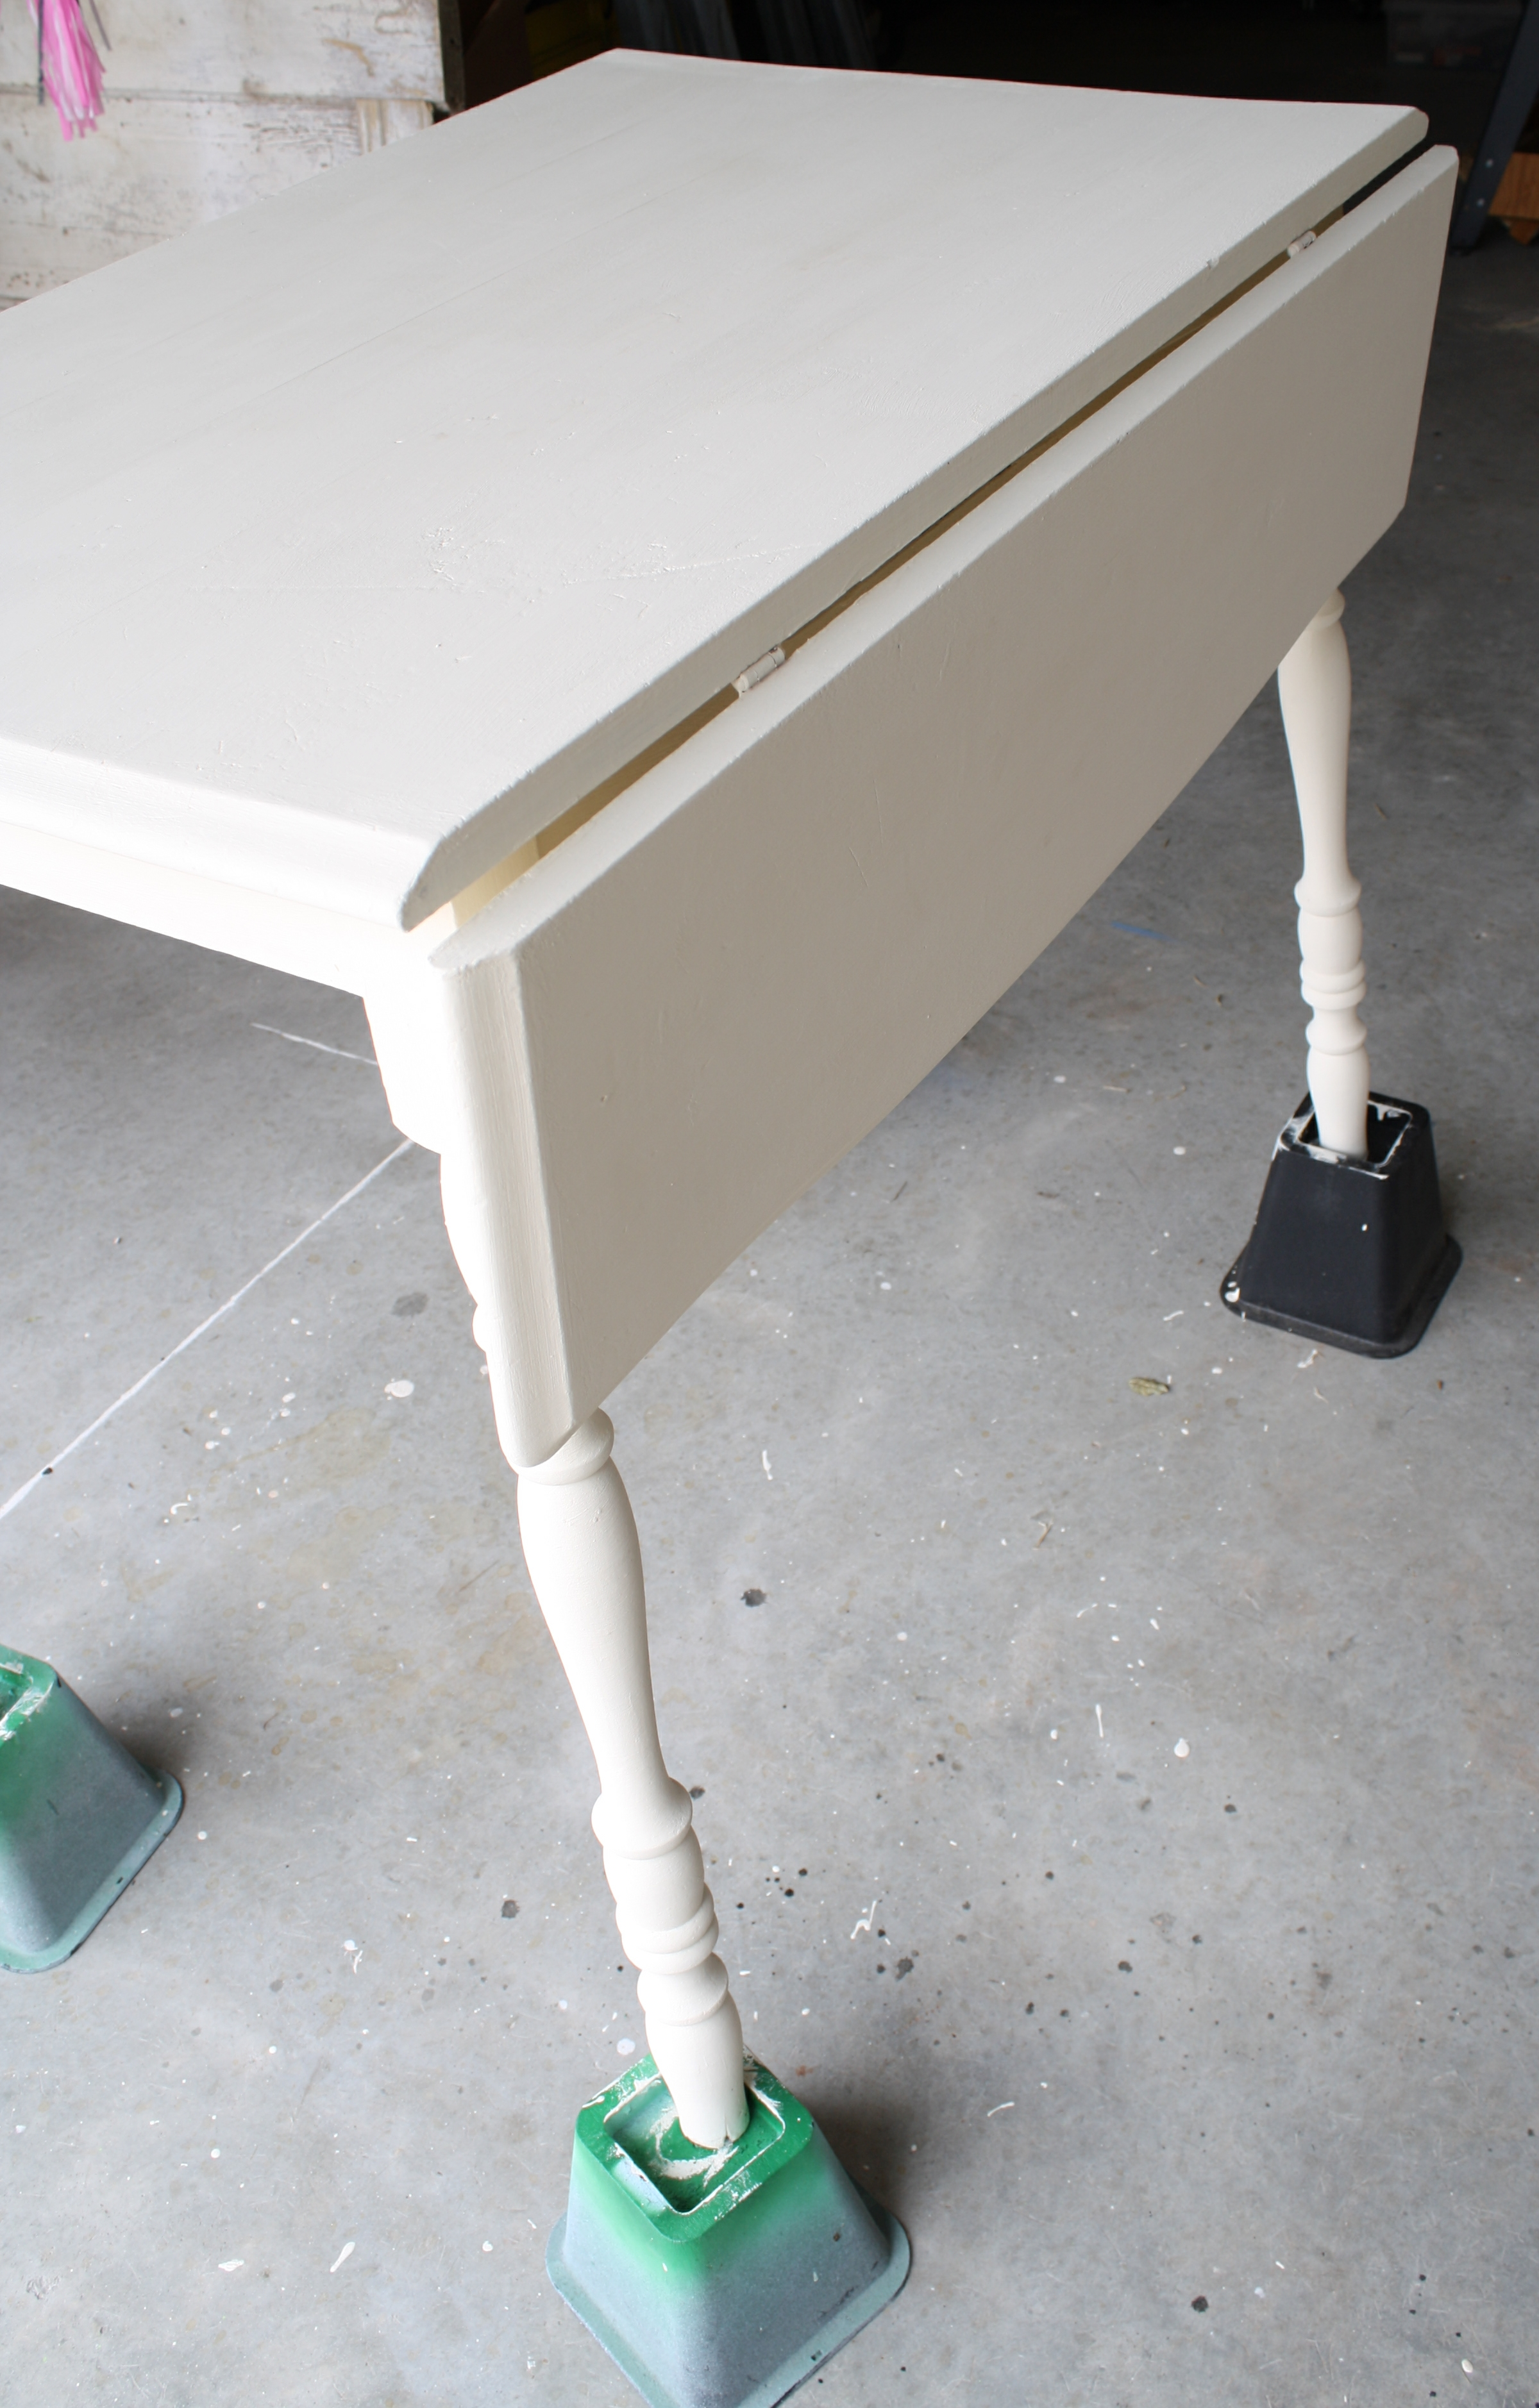 Vintage Drop Leaf Kitchen Table : IMG8487 from adiamondinthestuff.com size 2400 x 3756 jpeg 3415kB